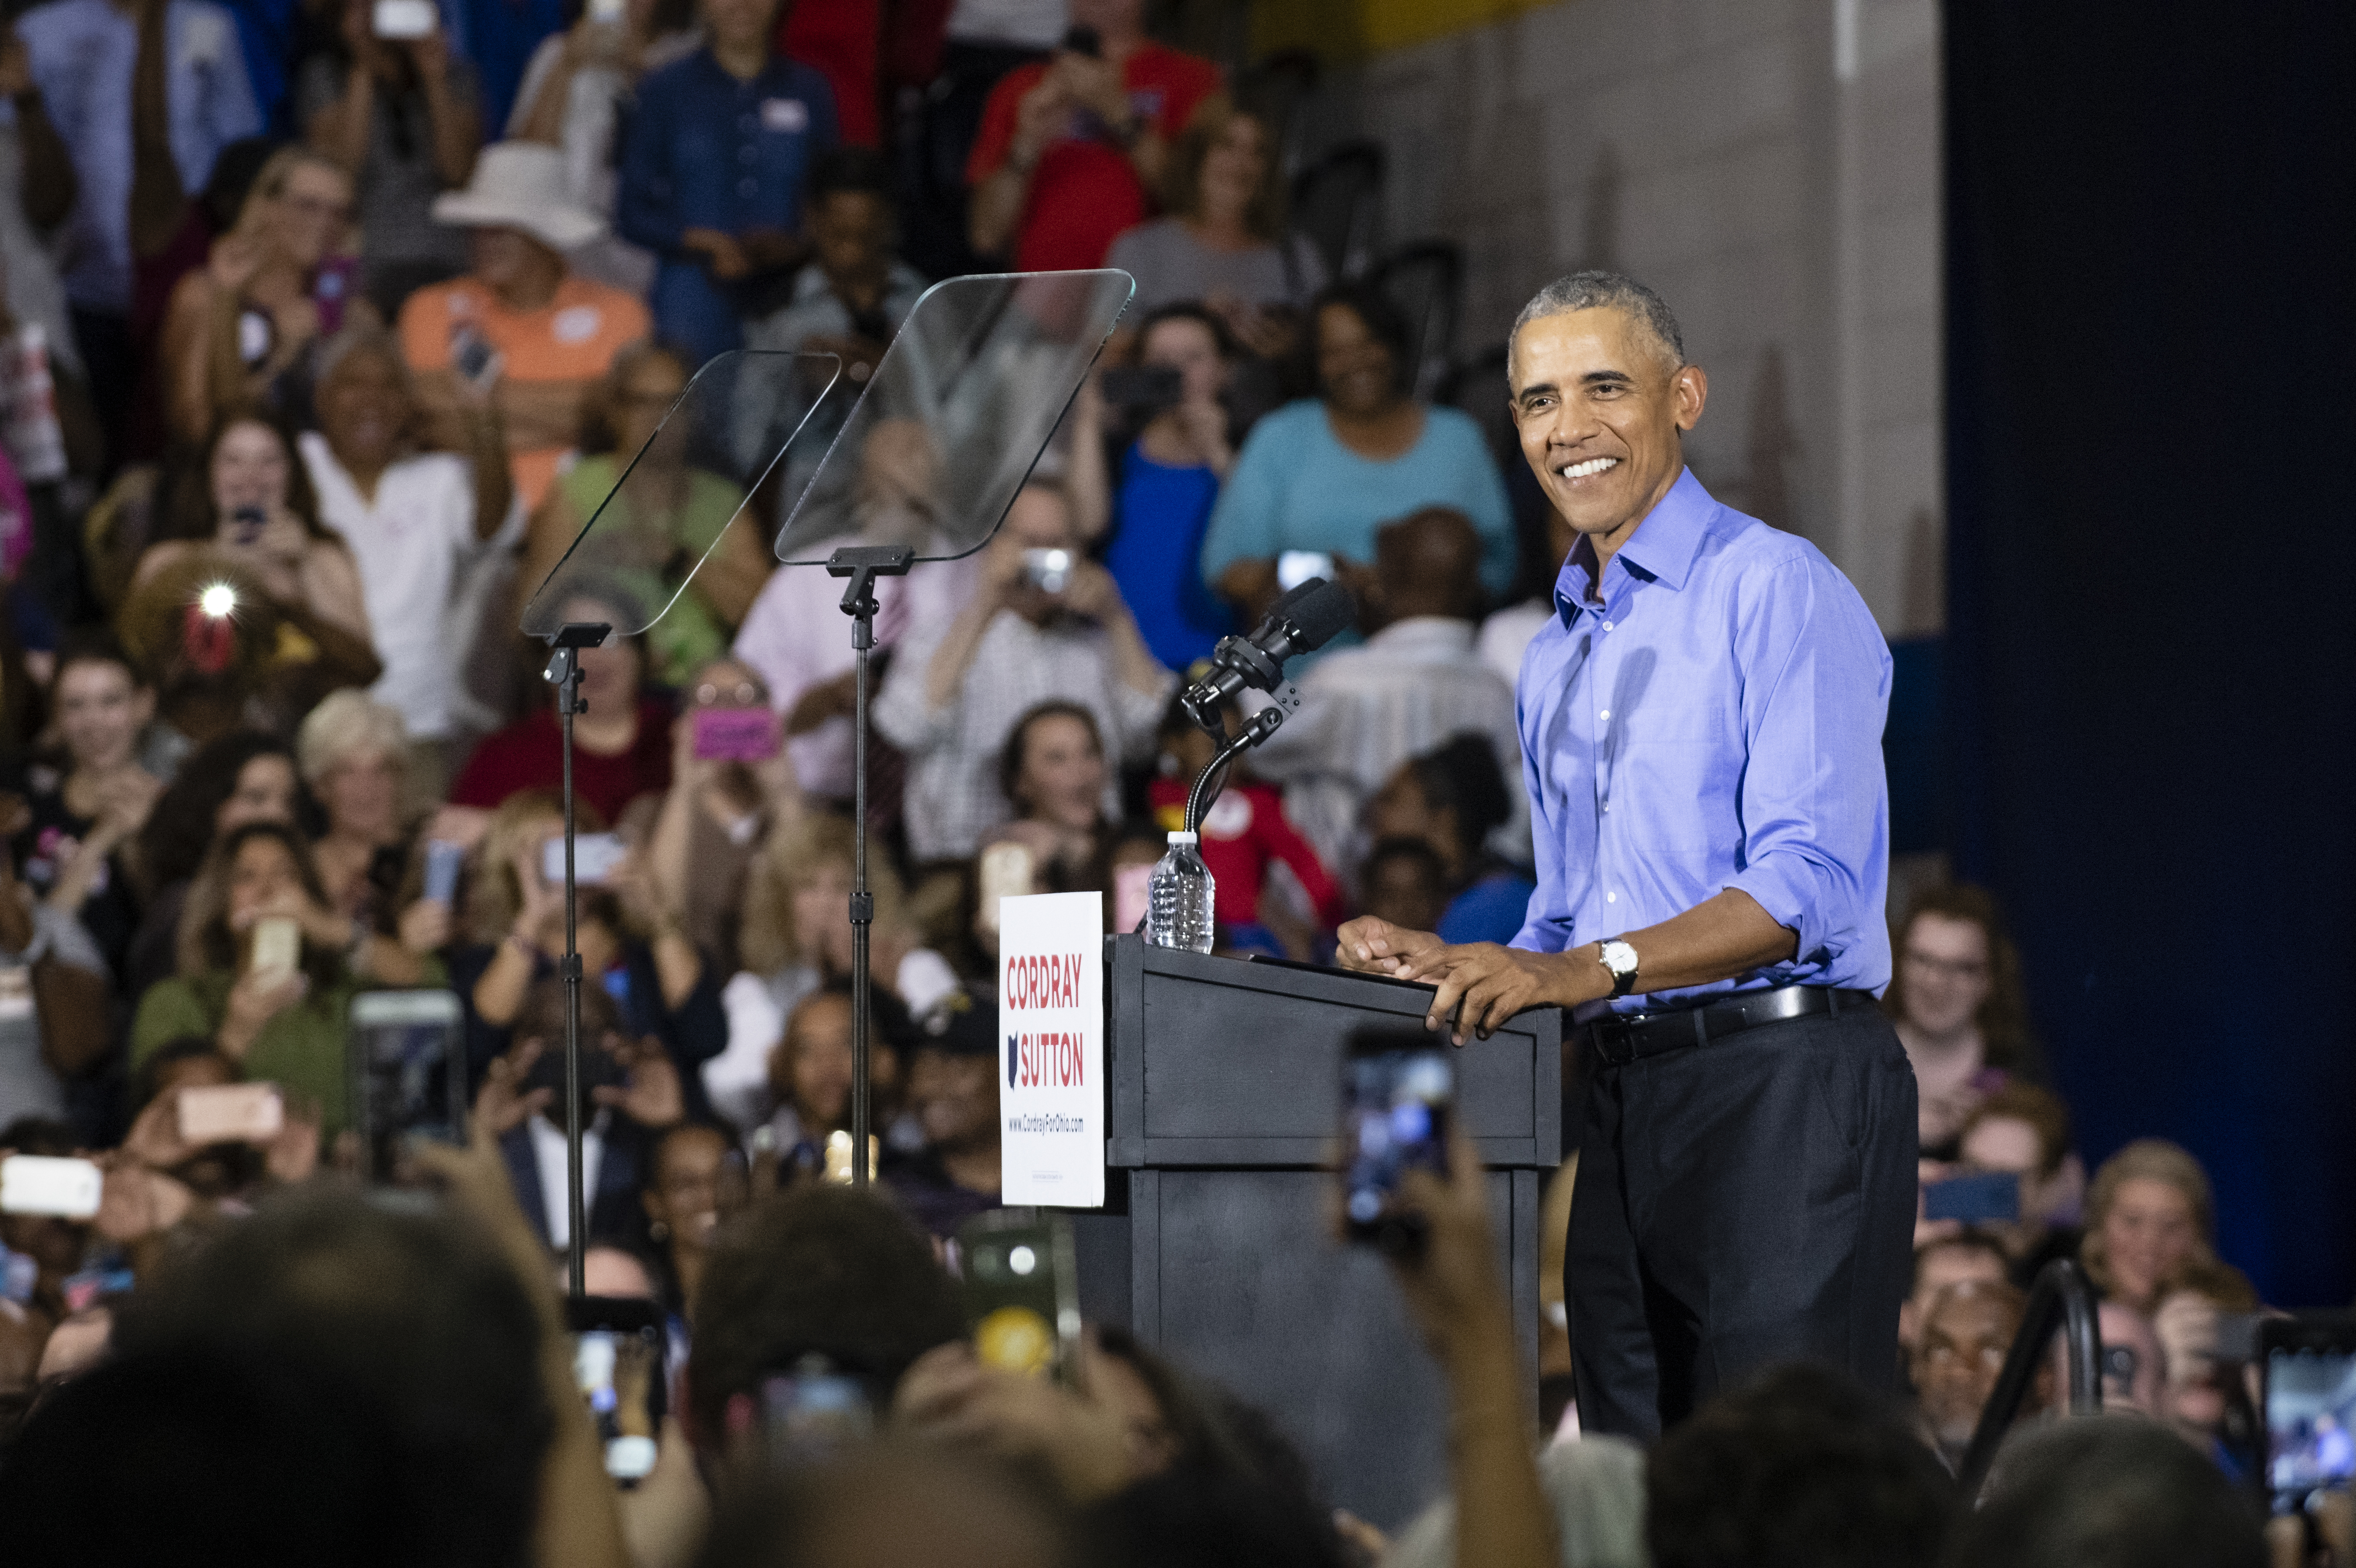 Former President Barack Obama speaks during a campaign rally for Ohio Gubernatorial candidate Richard Cordray at CMSD East Professional Center Gymnasium on September 13, 2018 in Cleveland, Ohio. Cordray, who served under Obama as the director of the Consumer Financial Protection Bureau, is one of the first candidates that Obama is campaigning for.